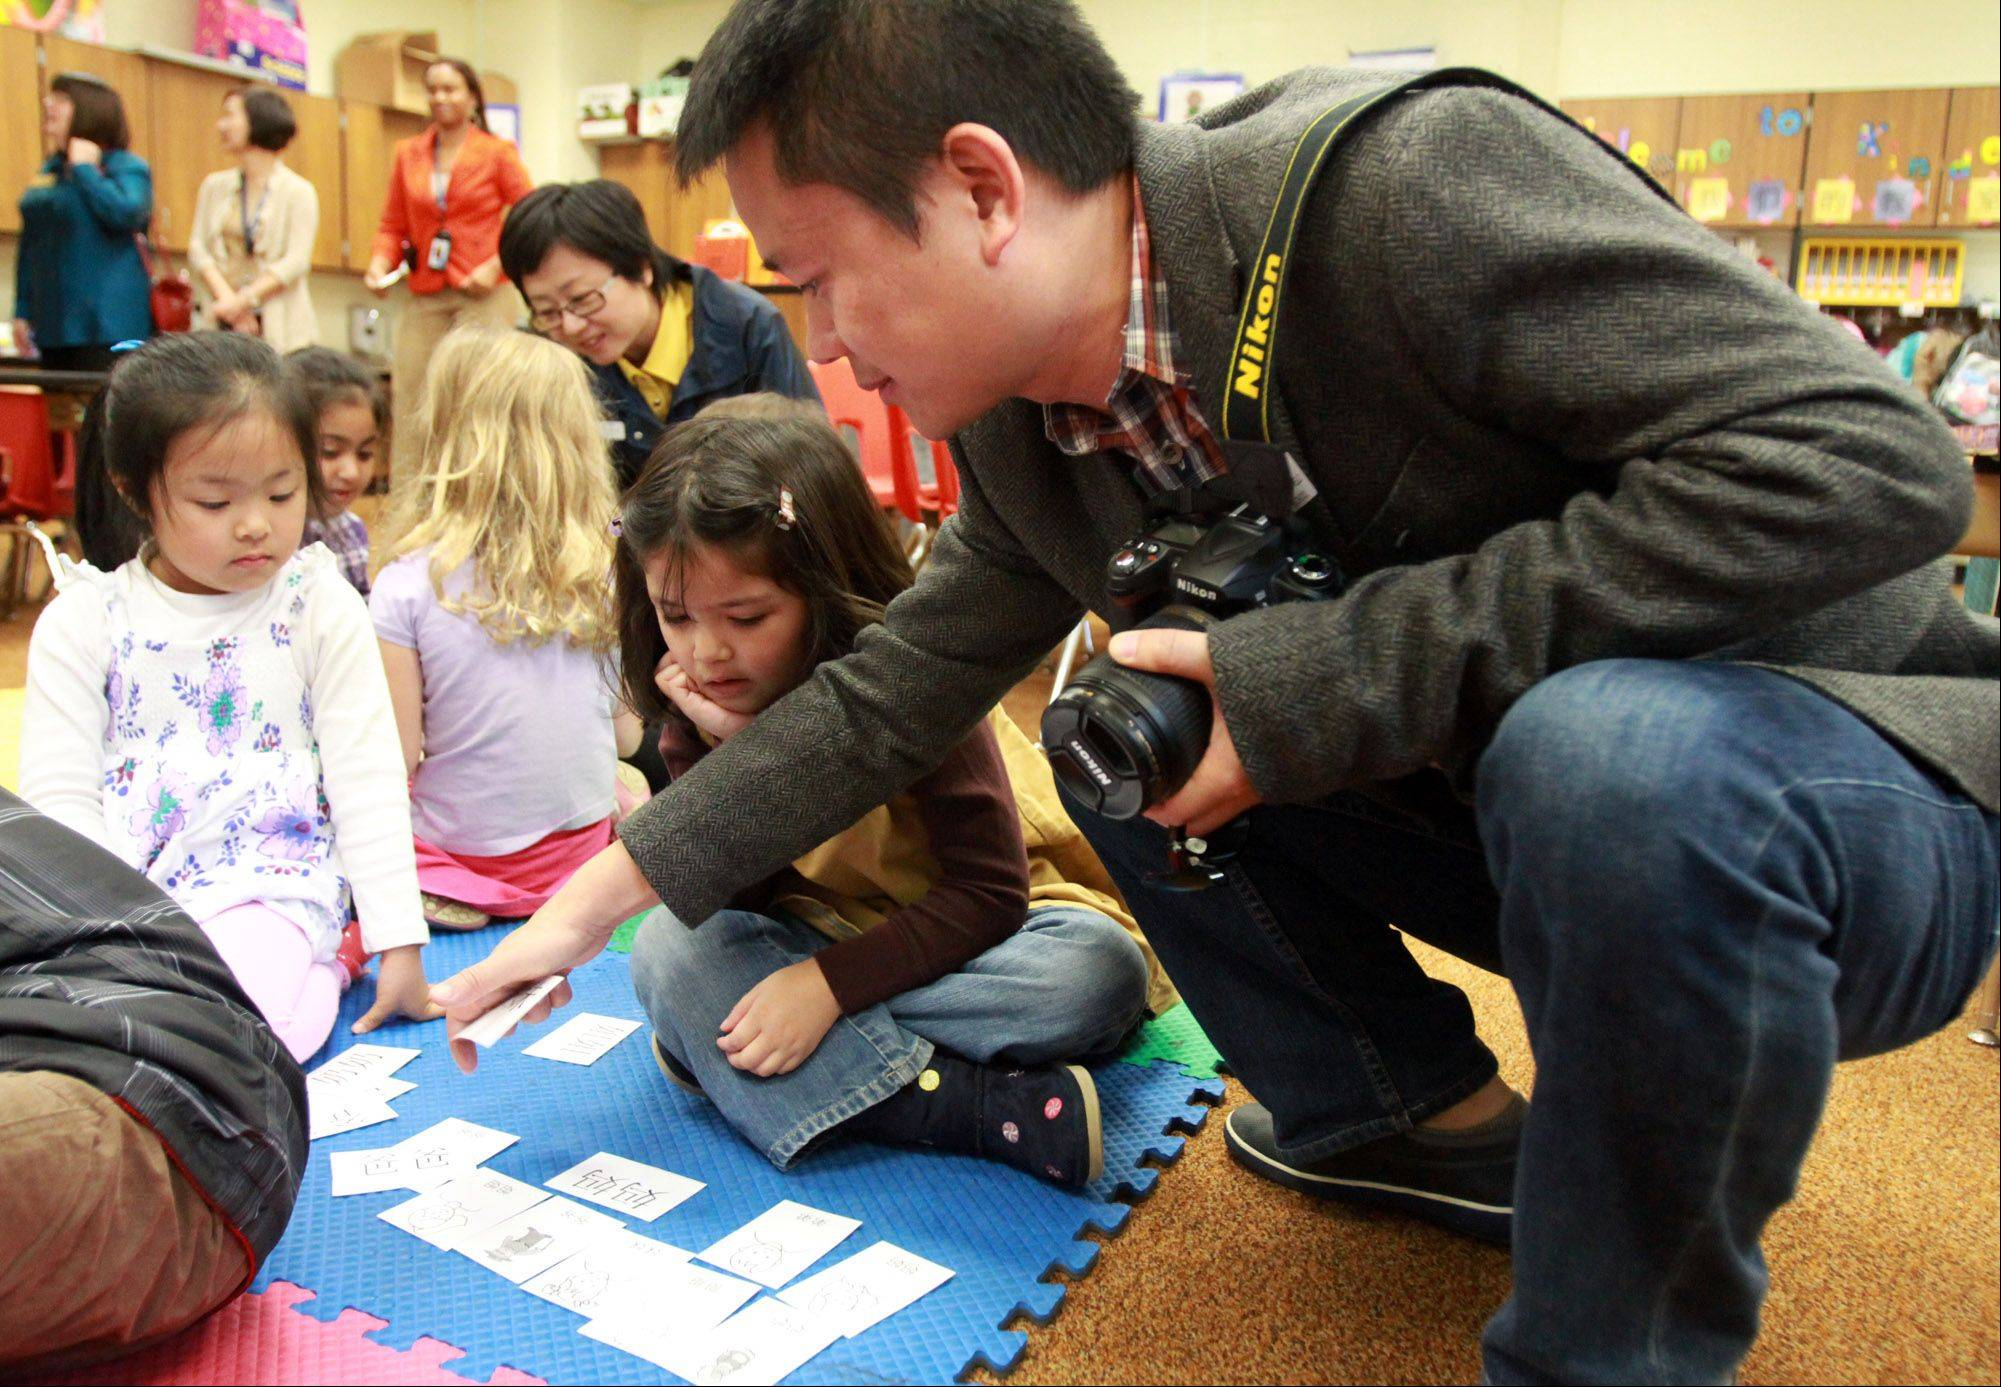 Campanelli Elementary School kindergartners in Angela Kuo's Chinese immersion class show Chinese language learning cards Thursday to Joe Zhao, deputy division chief with the Bureau of Science and Technology of Guangzhou Municipality as he and other government visitors from Guangzhou, China visit the Schaumburg school.